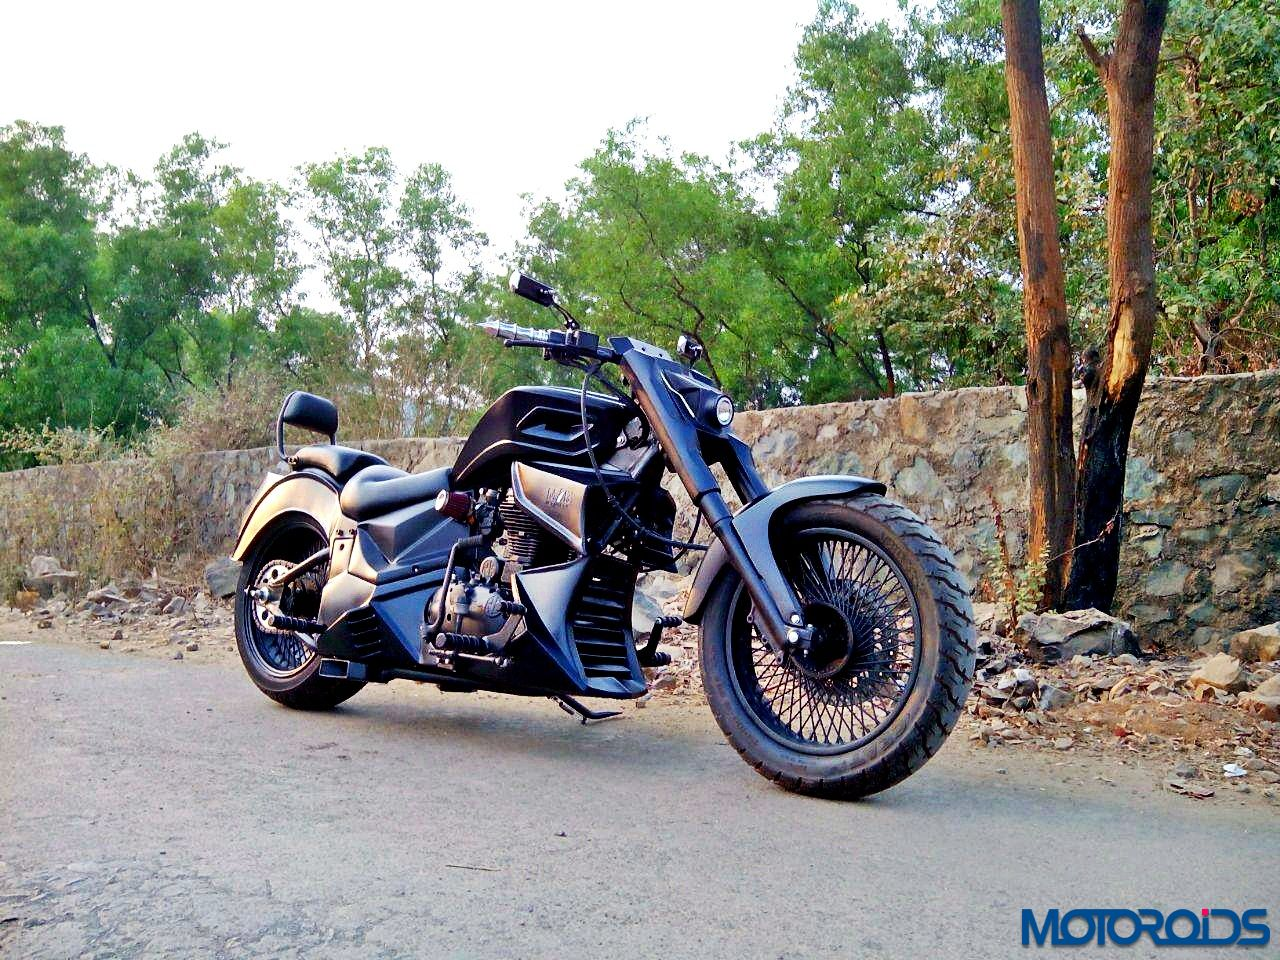 Meet the MiB: A custom built chopper motorcycle from Road Rage